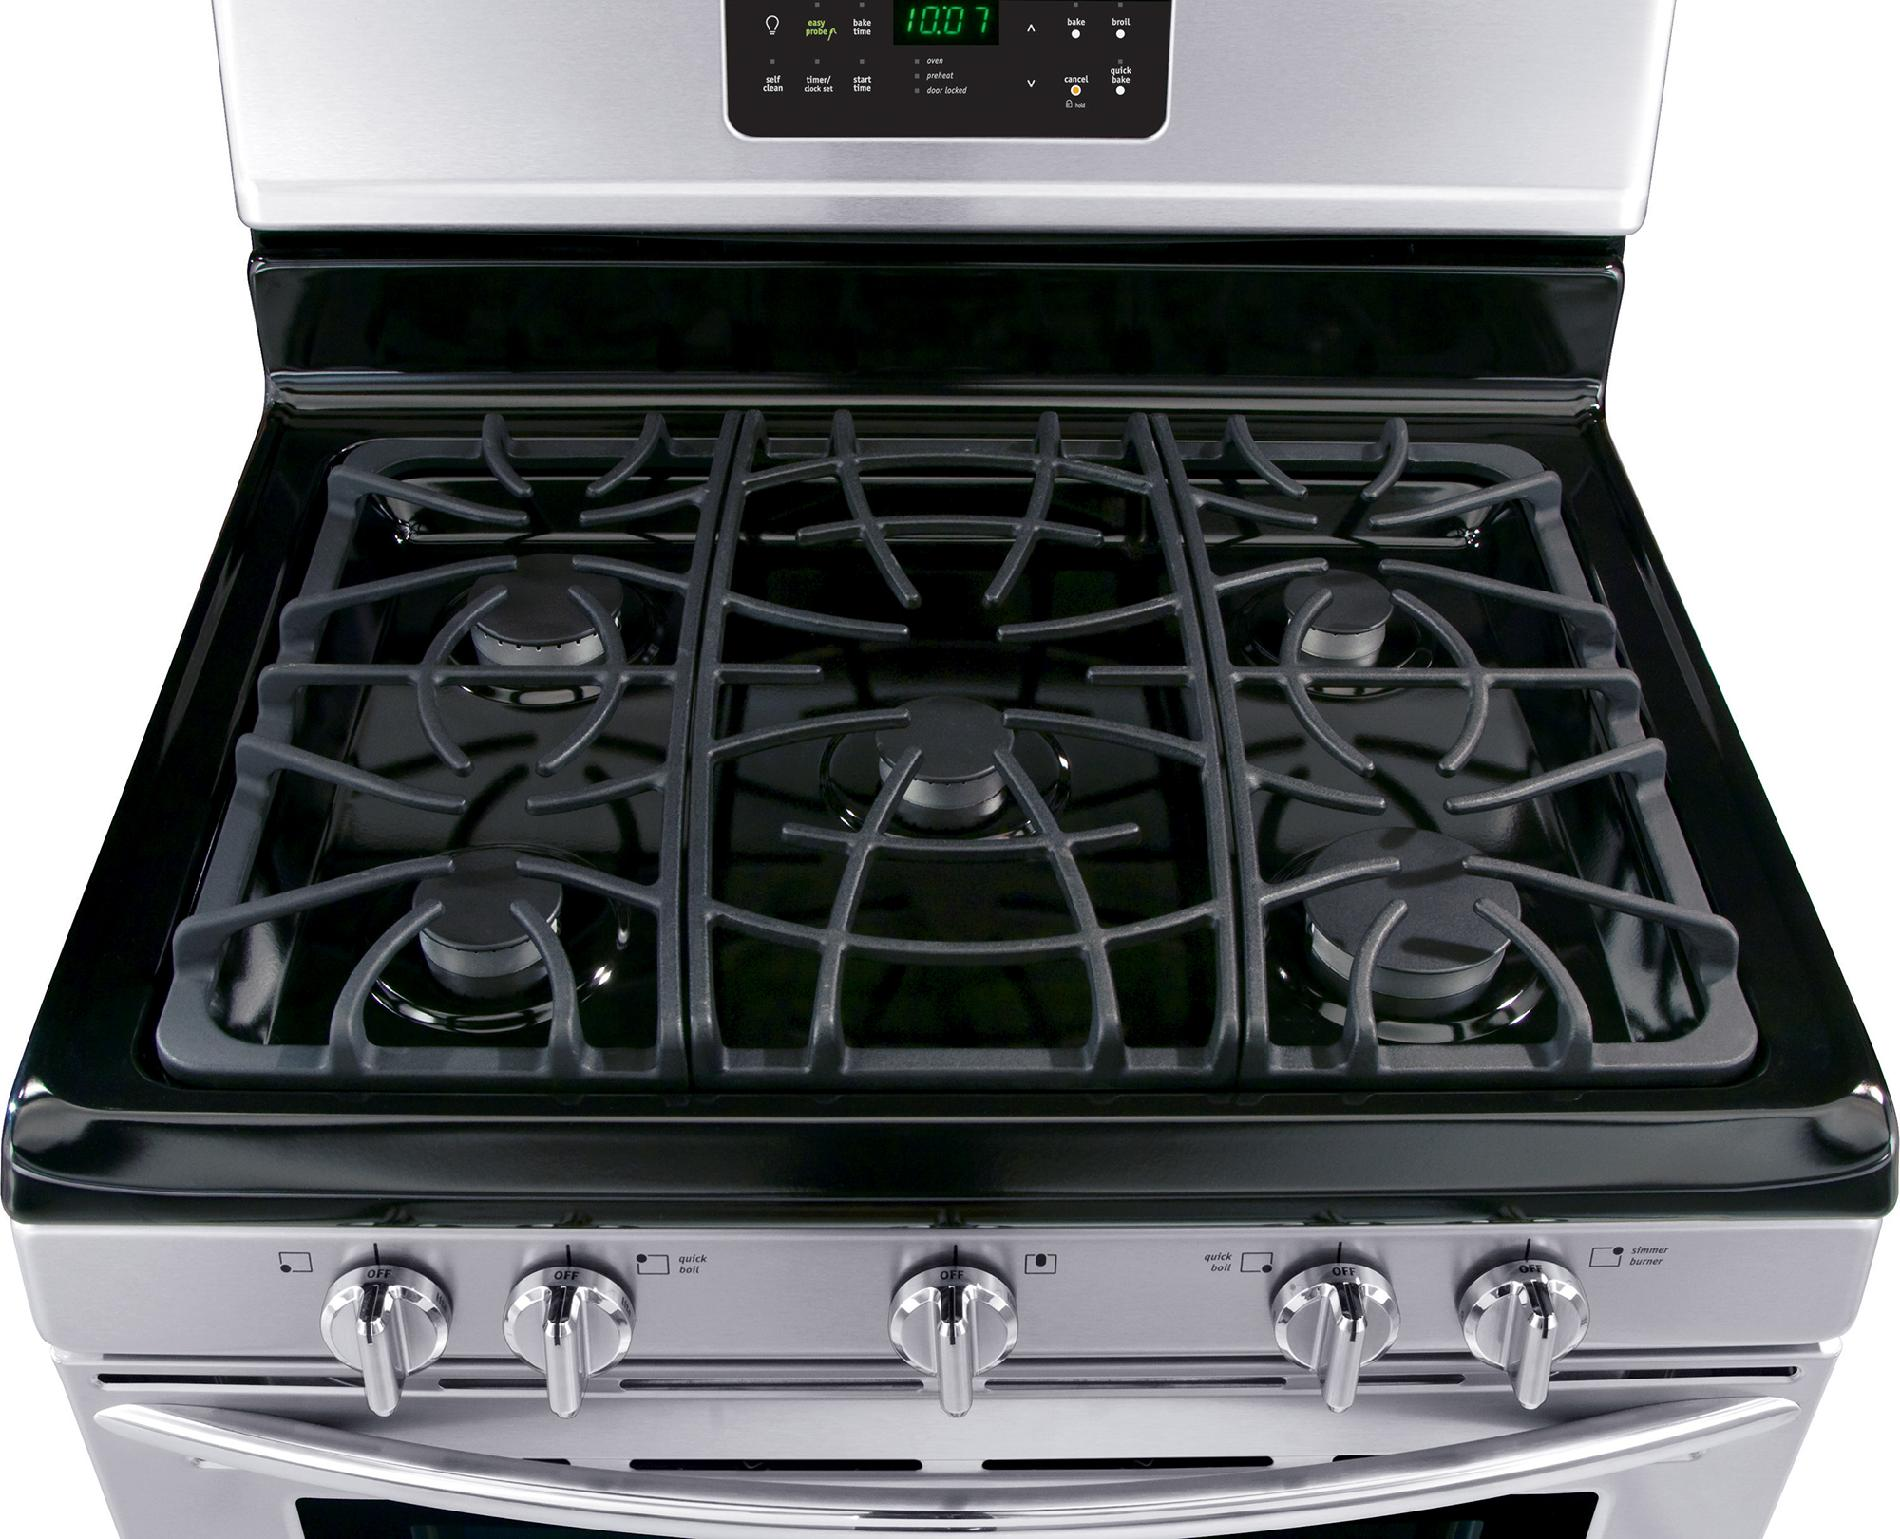 Frigidaire Gallery 5.0 cu. ft. Gas Range - Stainless Steel